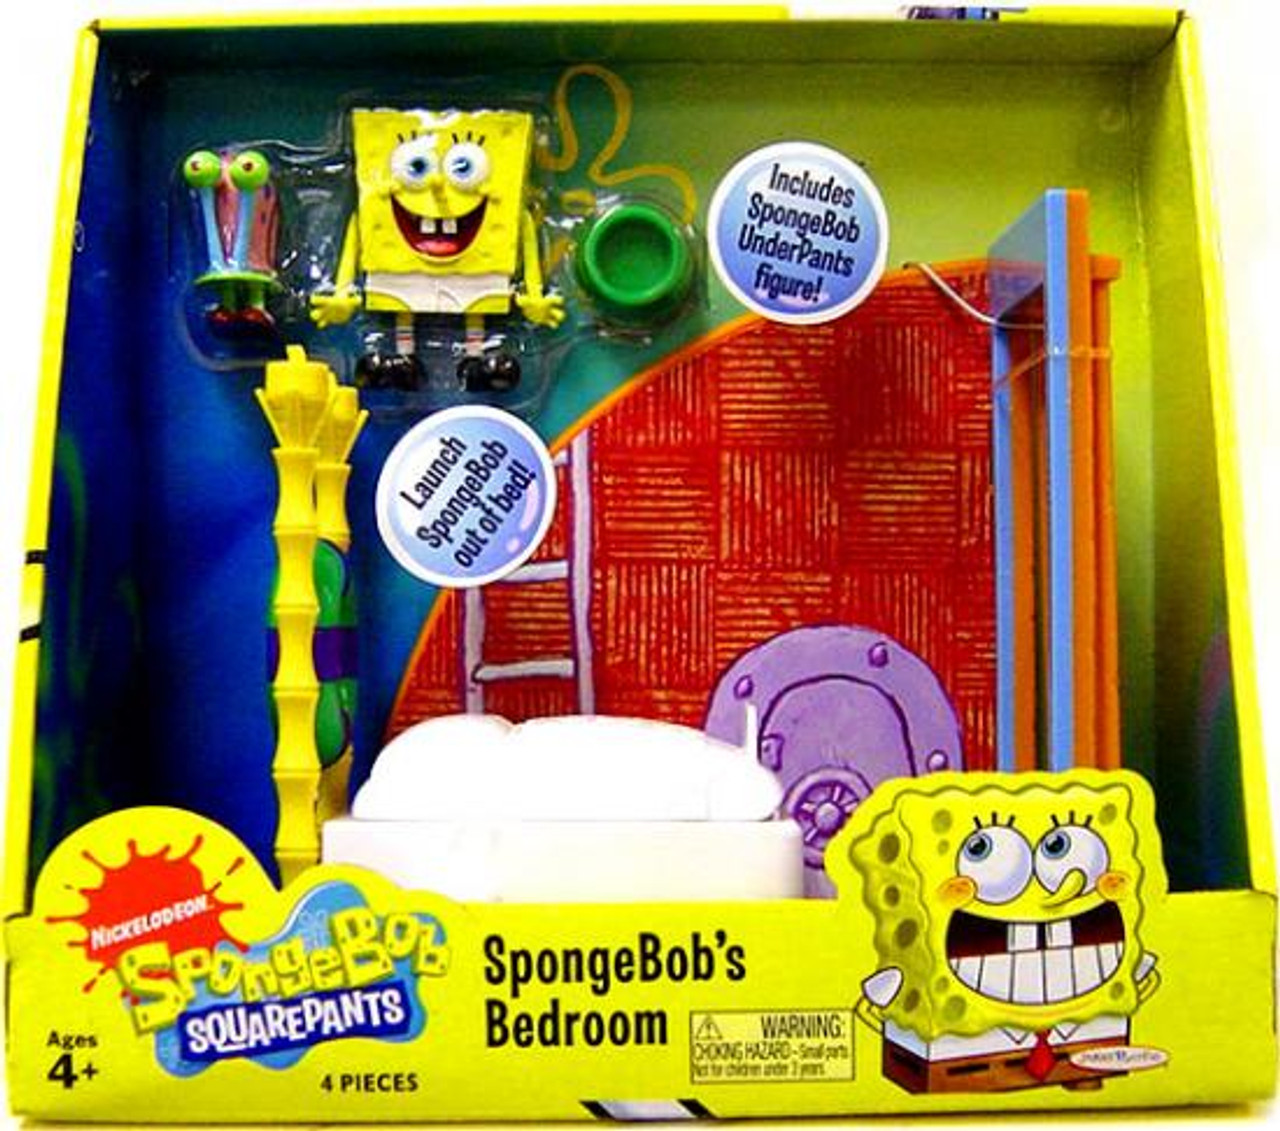 Spongebob Squarepants Spongebobu0027s Bedroom Playset